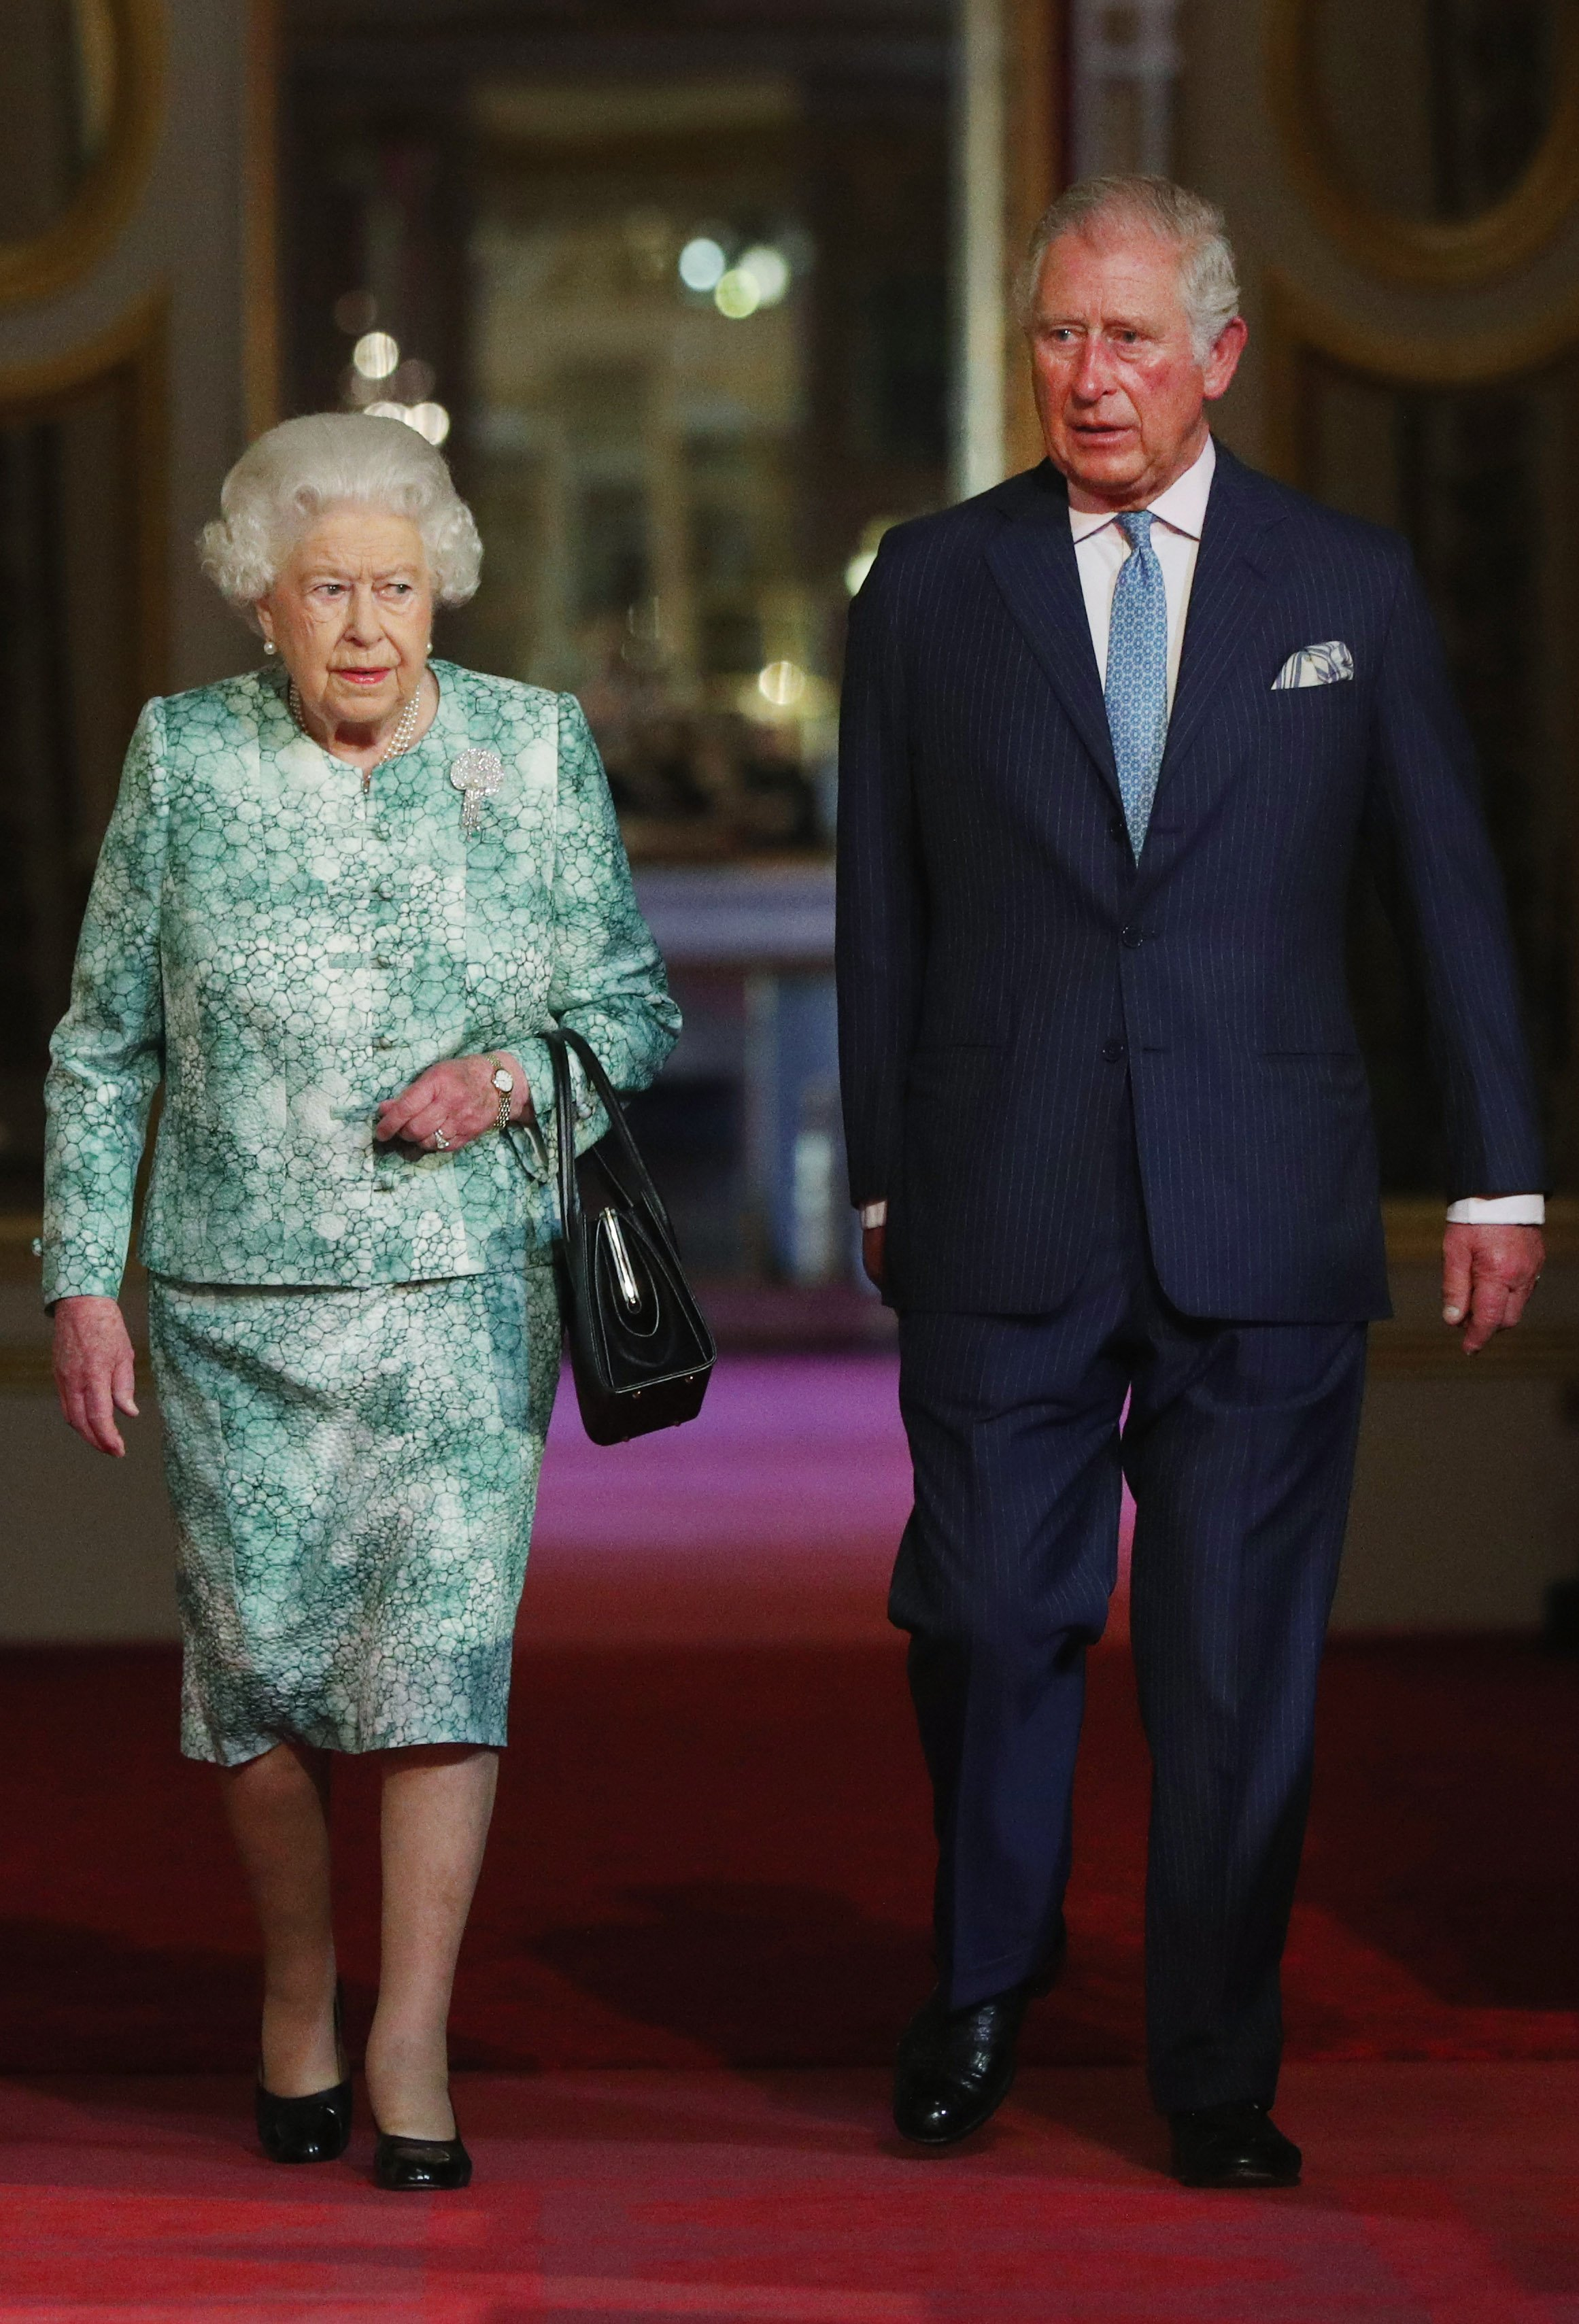 Queen Elizabeth II and Prince Charles, Prince of Wales attend the formal opening of the Commonwealth Heads of Government Meeting on April 19, 2018, in London, England. | Source: Getty Images.